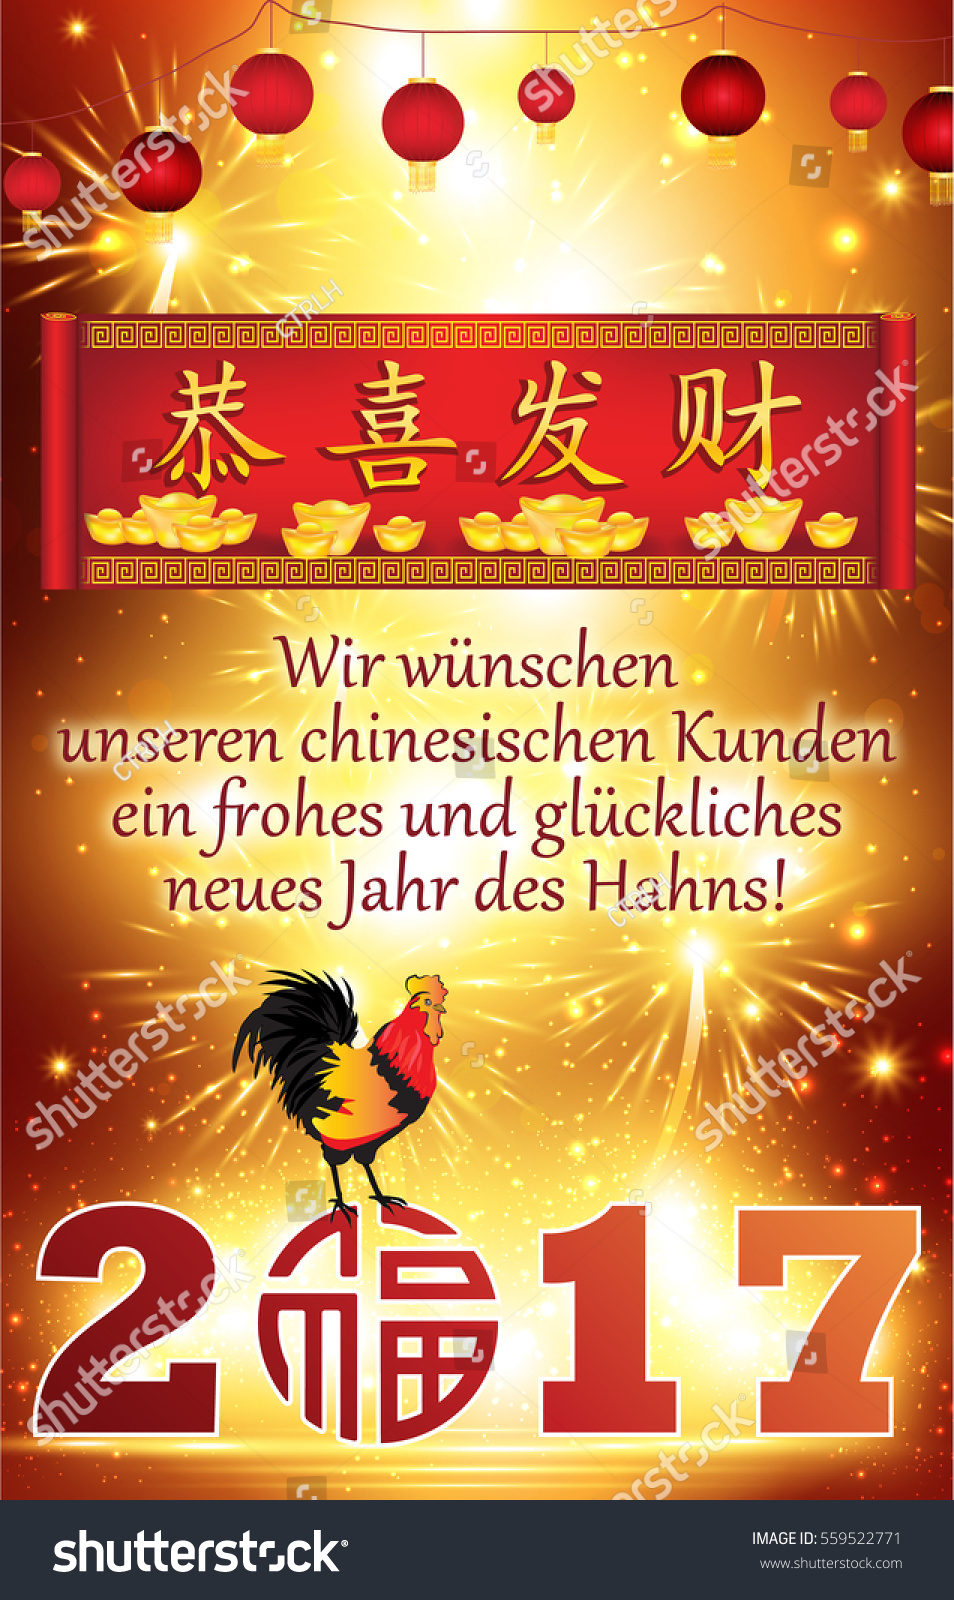 German business greeting card chinese new stock illustration german business greeting card chinese new stock illustration 559522771 shutterstock m4hsunfo